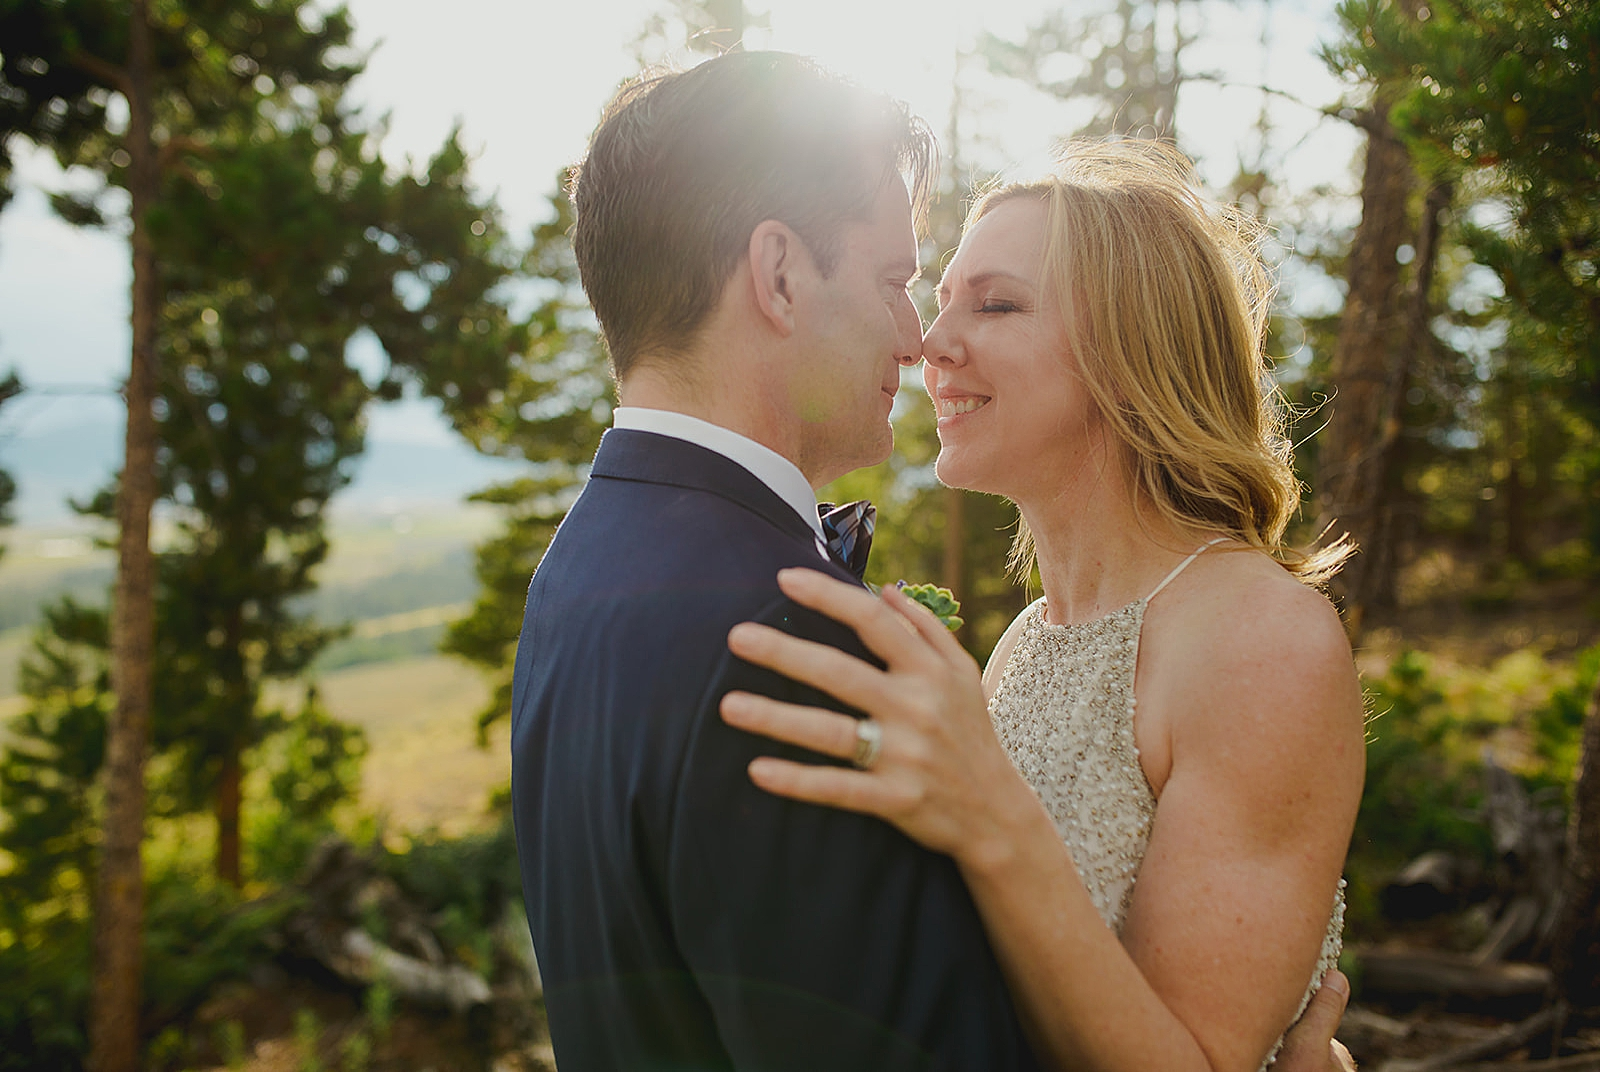 Couple embracing in forest photo by Denver wedding photographer Matthew Speck